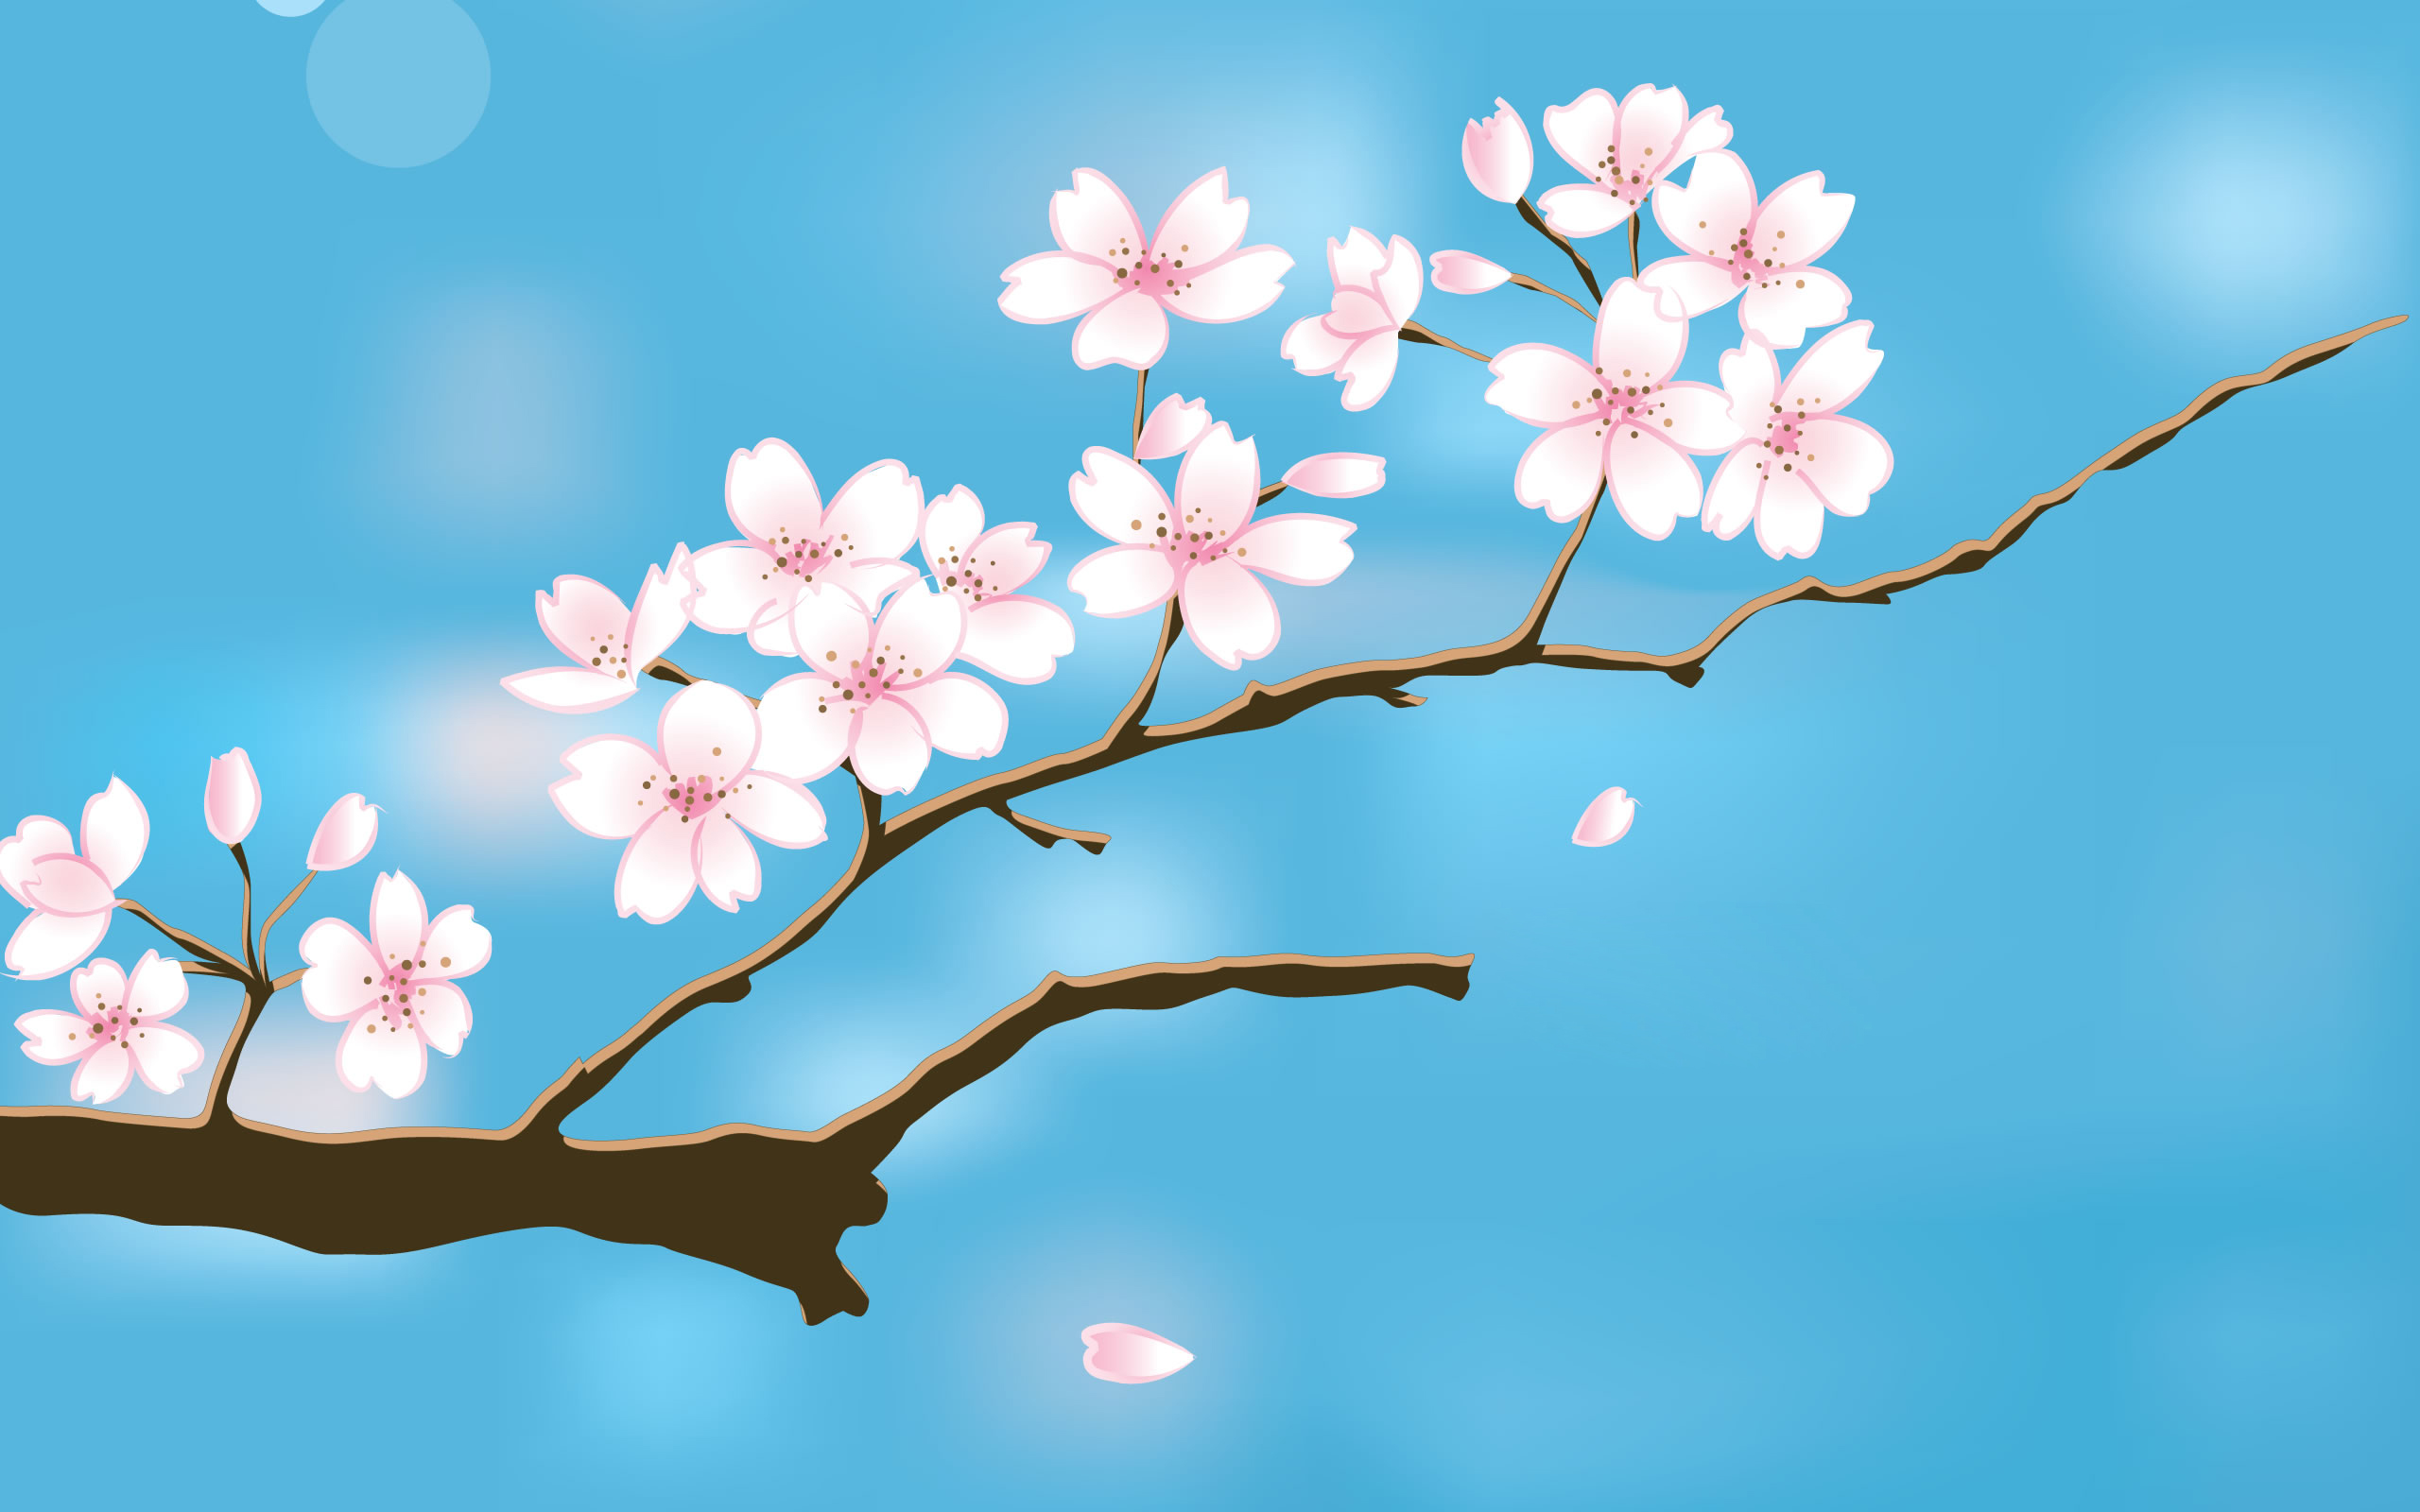 Spring background download 2560x1600